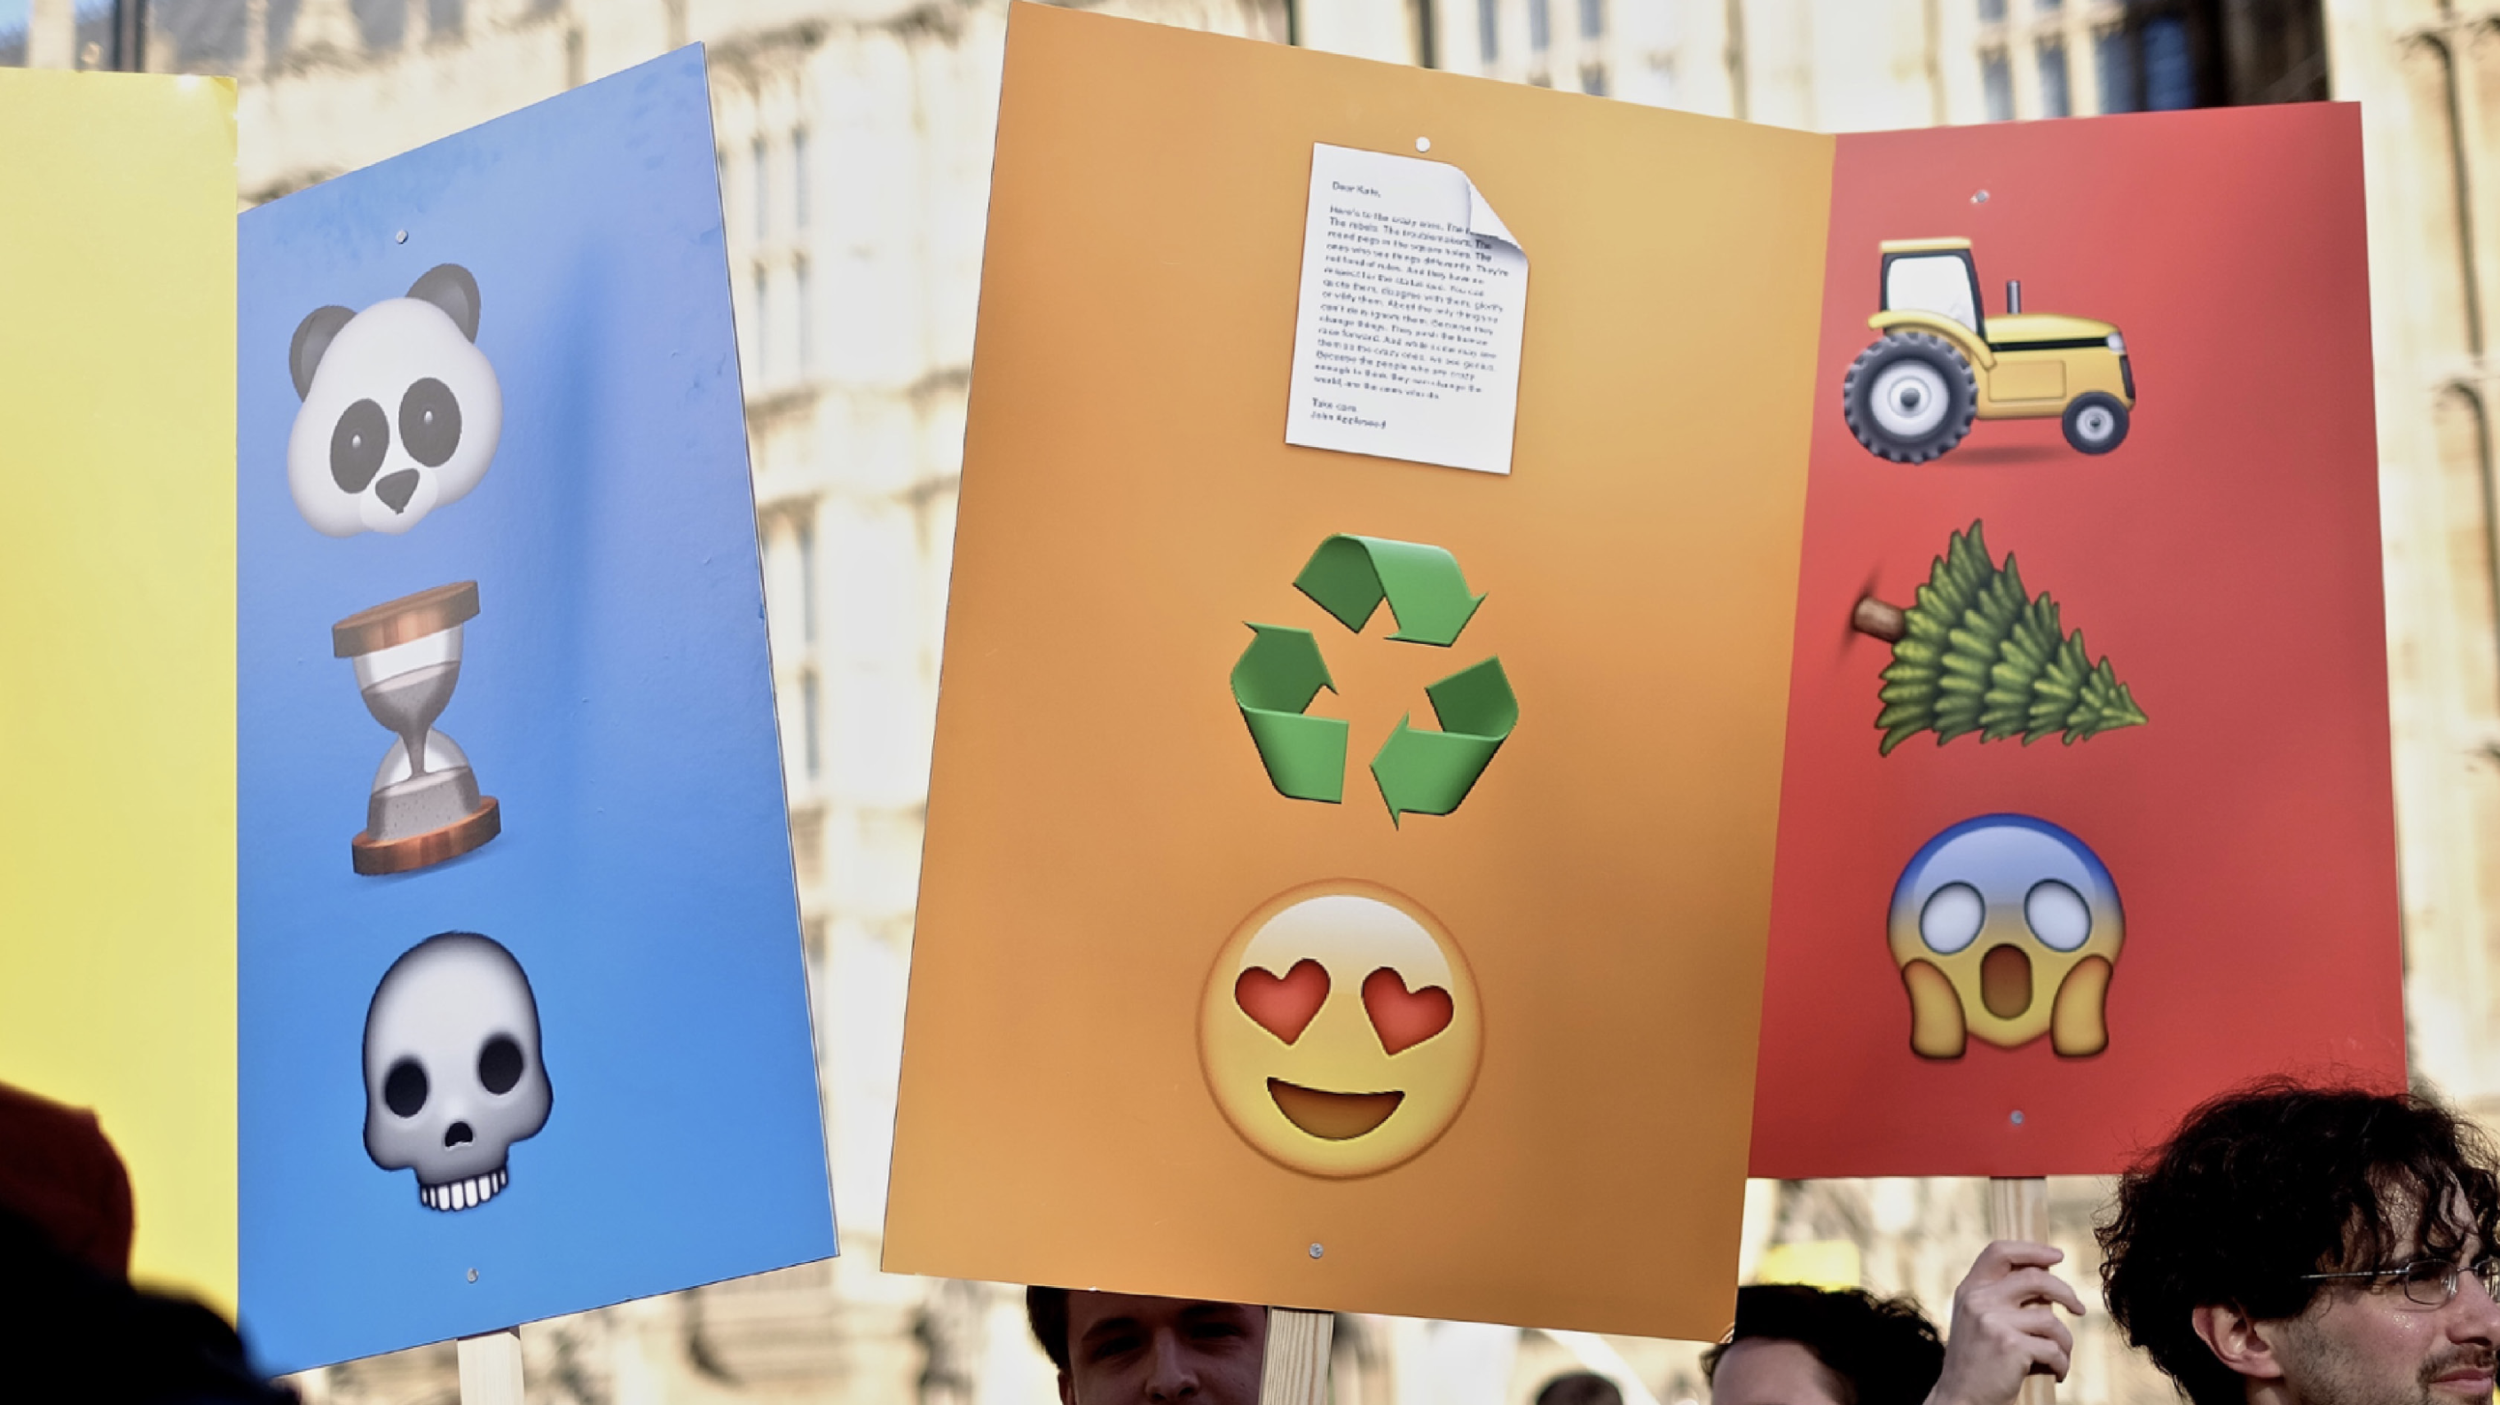 Protest placards made from the universal language of Emojis